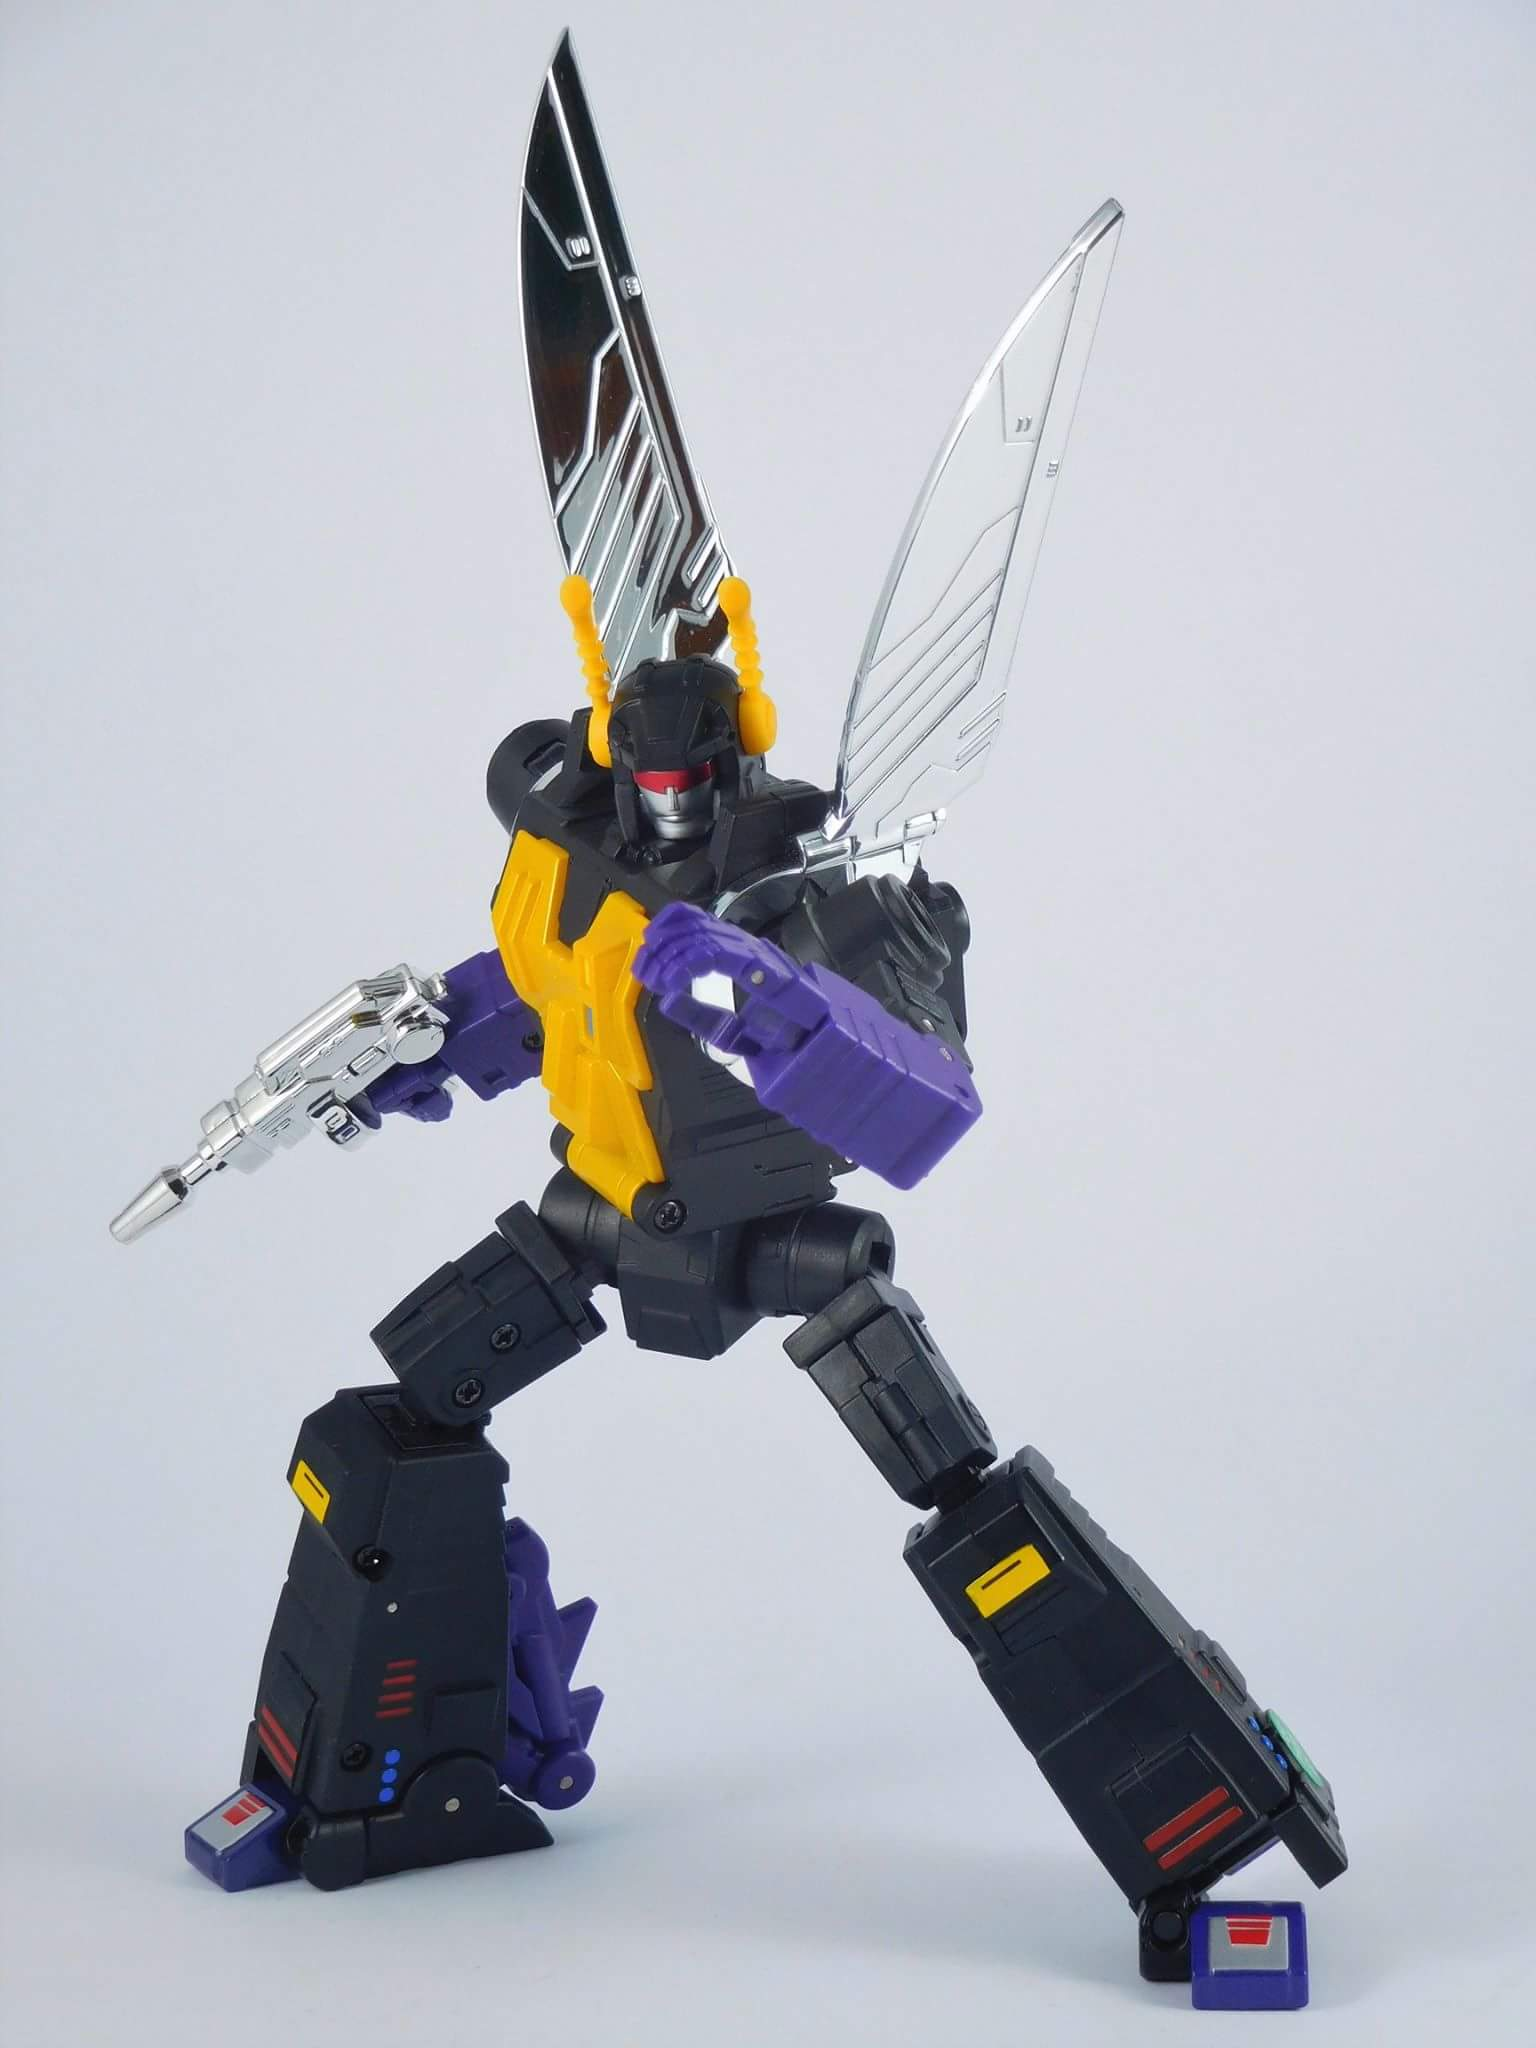 [Fanstoys] Produit Tiers - Jouet FT-12 Grenadier / FT-13 Mercenary / FT-14 Forager - aka Insecticons - Page 4 MHpOd2rO